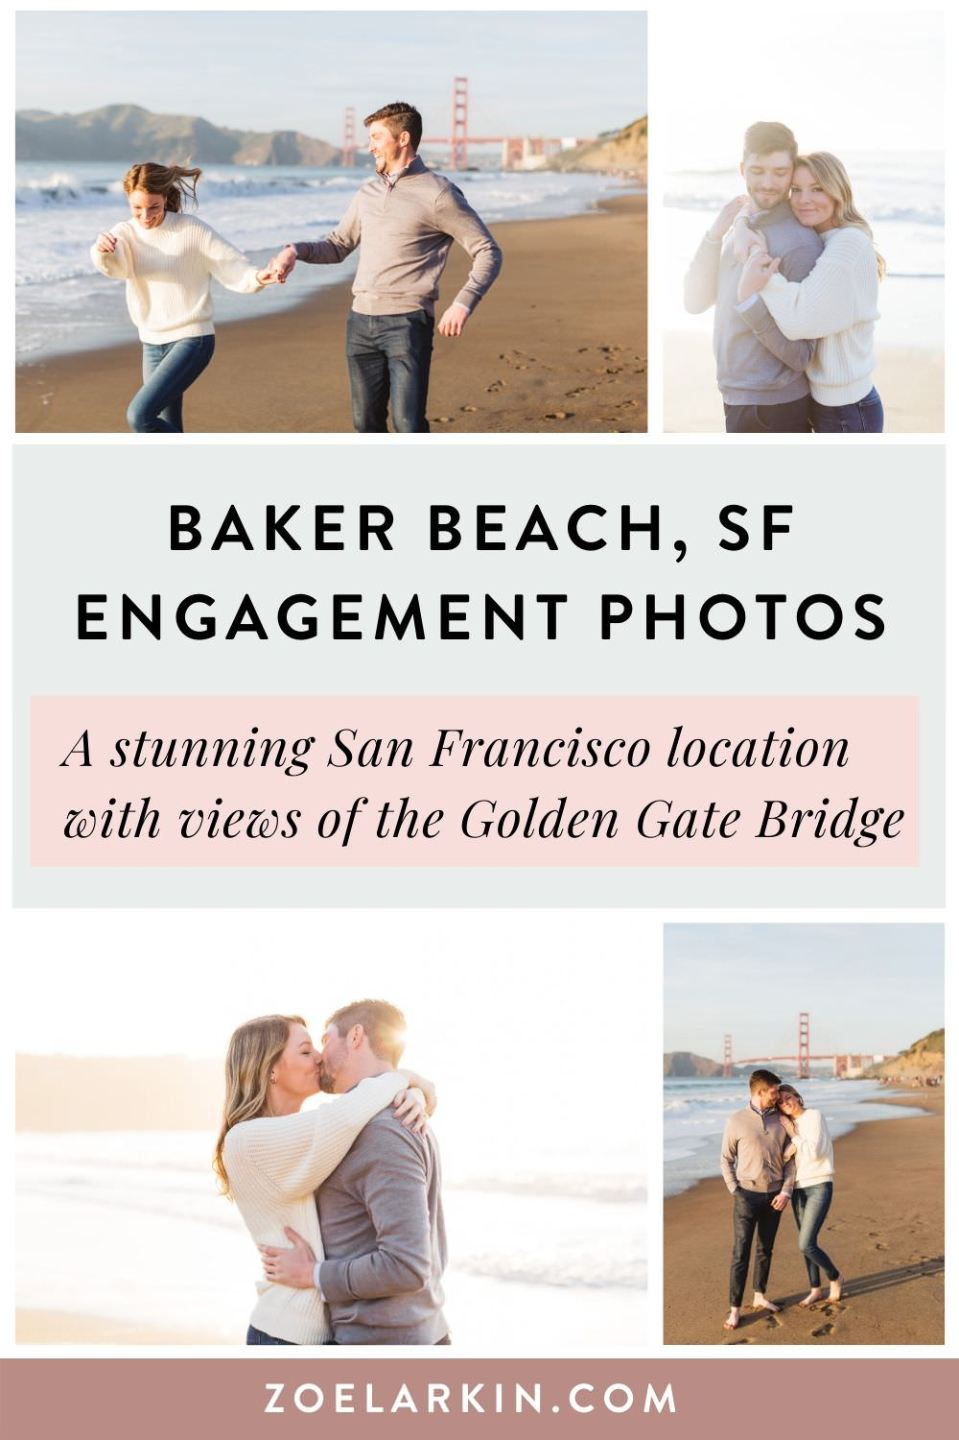 This couple chose Baker Beach for their San Francisco engagement shoot because it's wild, iconic and vast. This couple, Andrea and Mason, spent a beautiful sunset evening at the stunning SF engagement photography location overlooking the Golden Gate Bridge. This favorite photography location has wonderful views, nice weather + a mile-long beach. Looking for a San Francisco engagement photographer for your Baker Beach engagement shoot? #sanfrancisco #engagementphotography | Zoe Larkin Photography